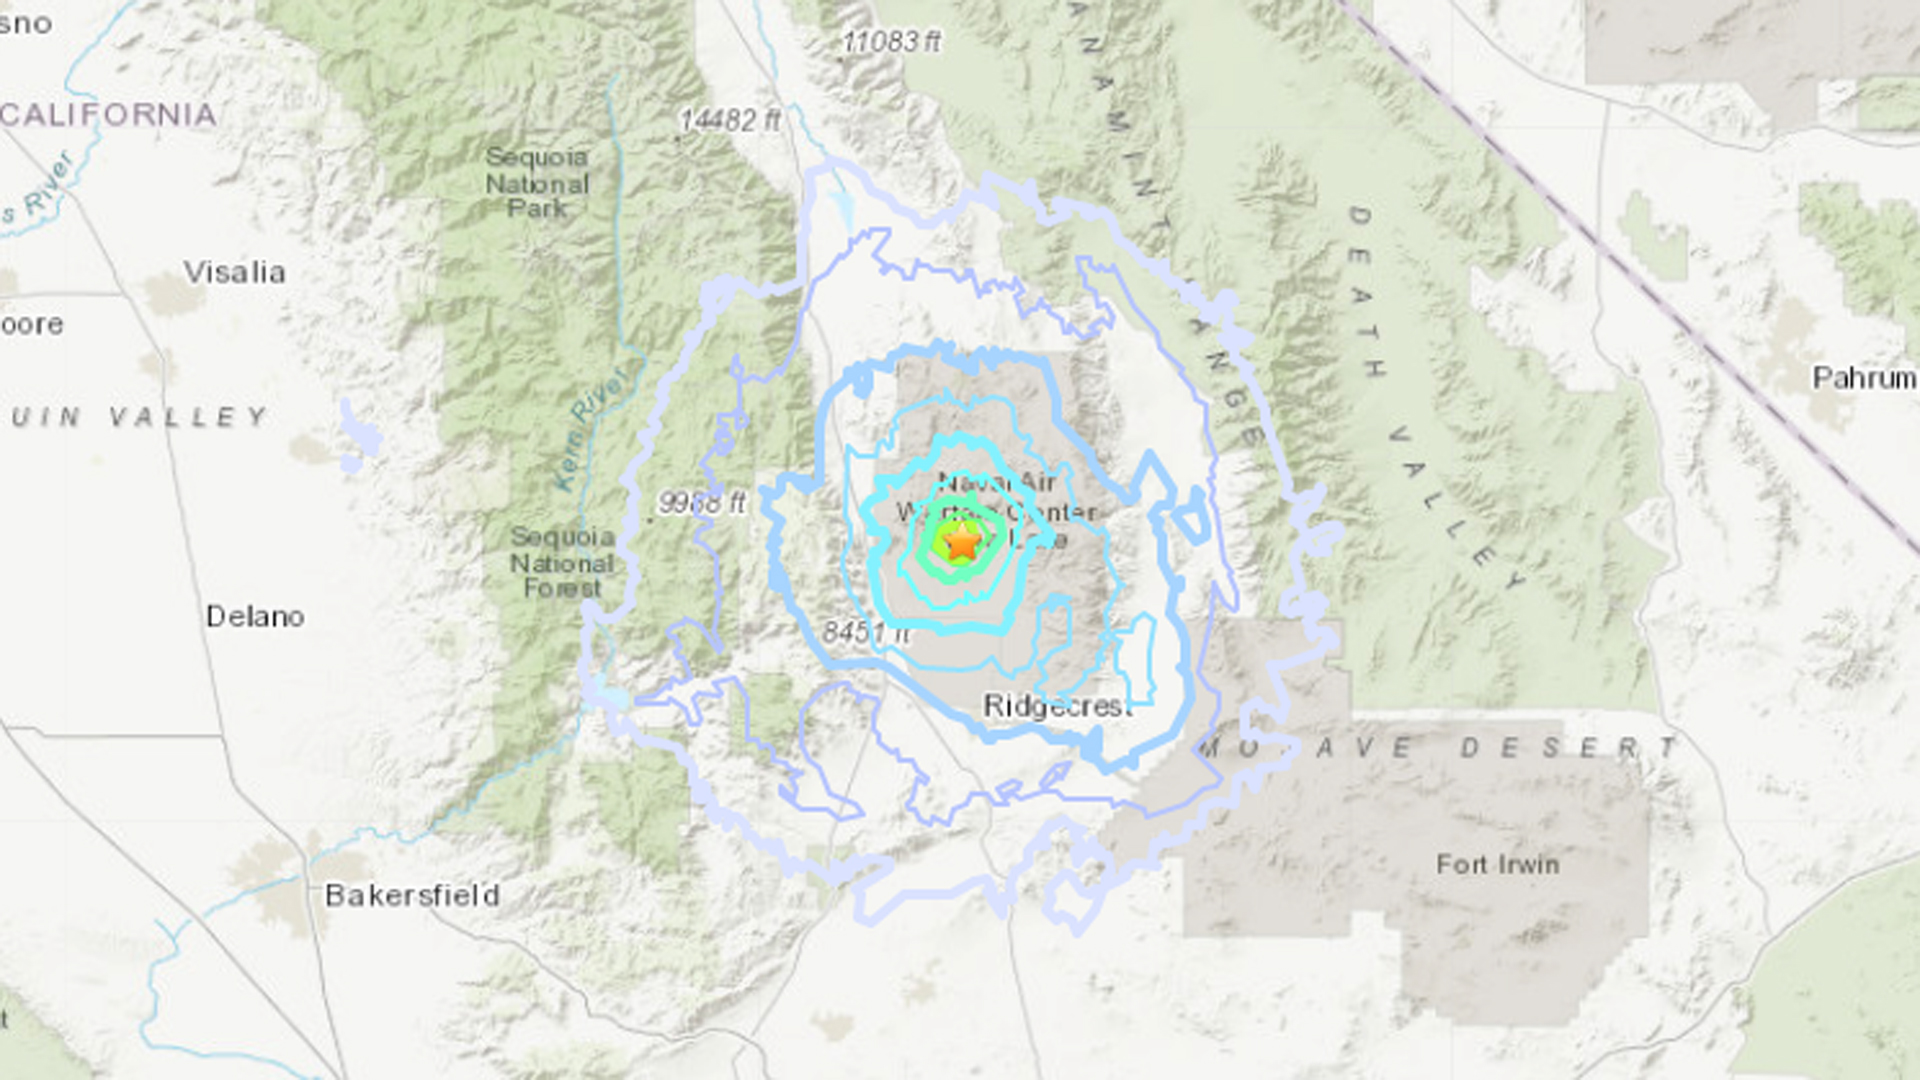 A magnitude 4.7 quake that shook the Ridgecrest region July 25, 2019, is among more than 80,000 temblors to hit the area since July 4.